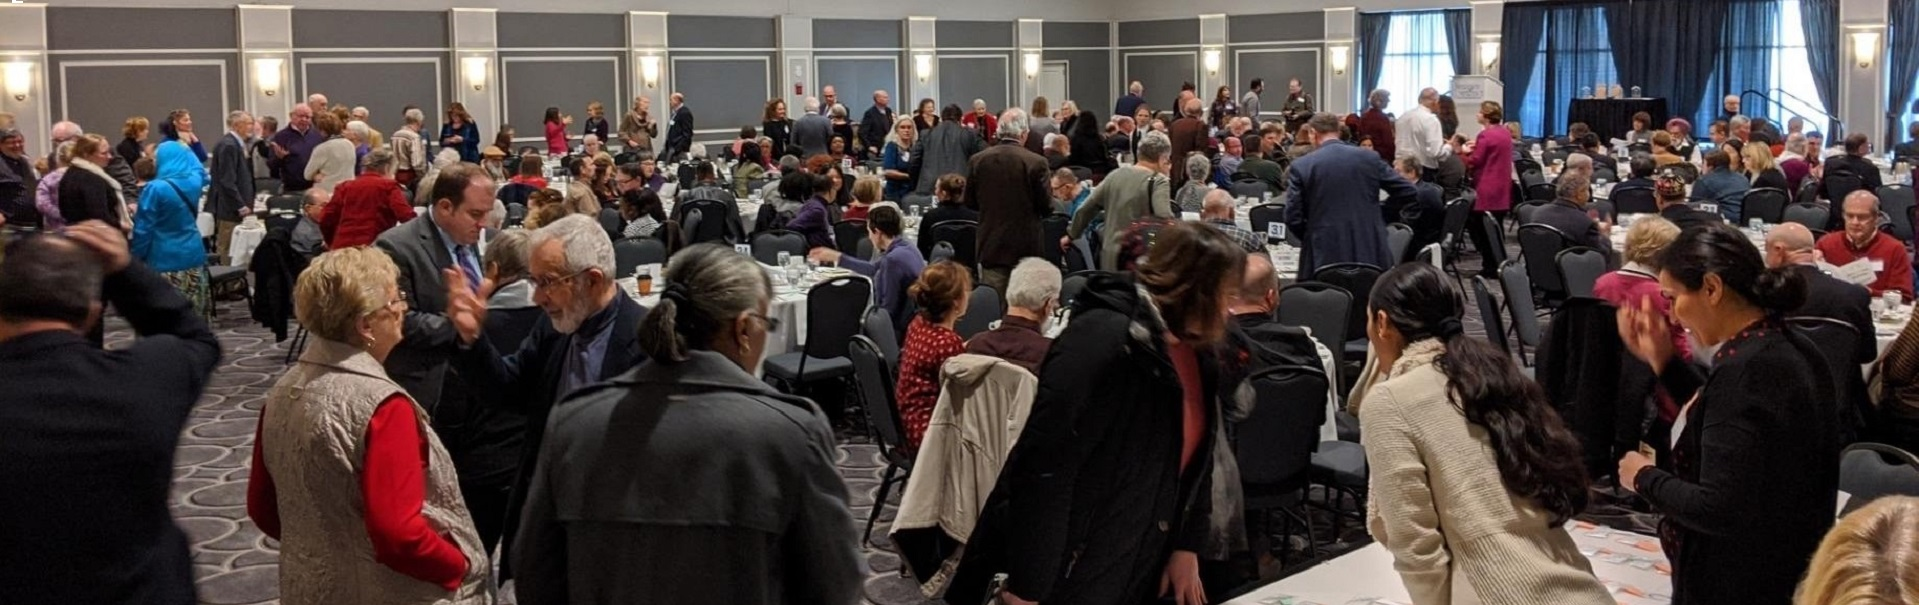 Interfaith Conference Luncheon 2019